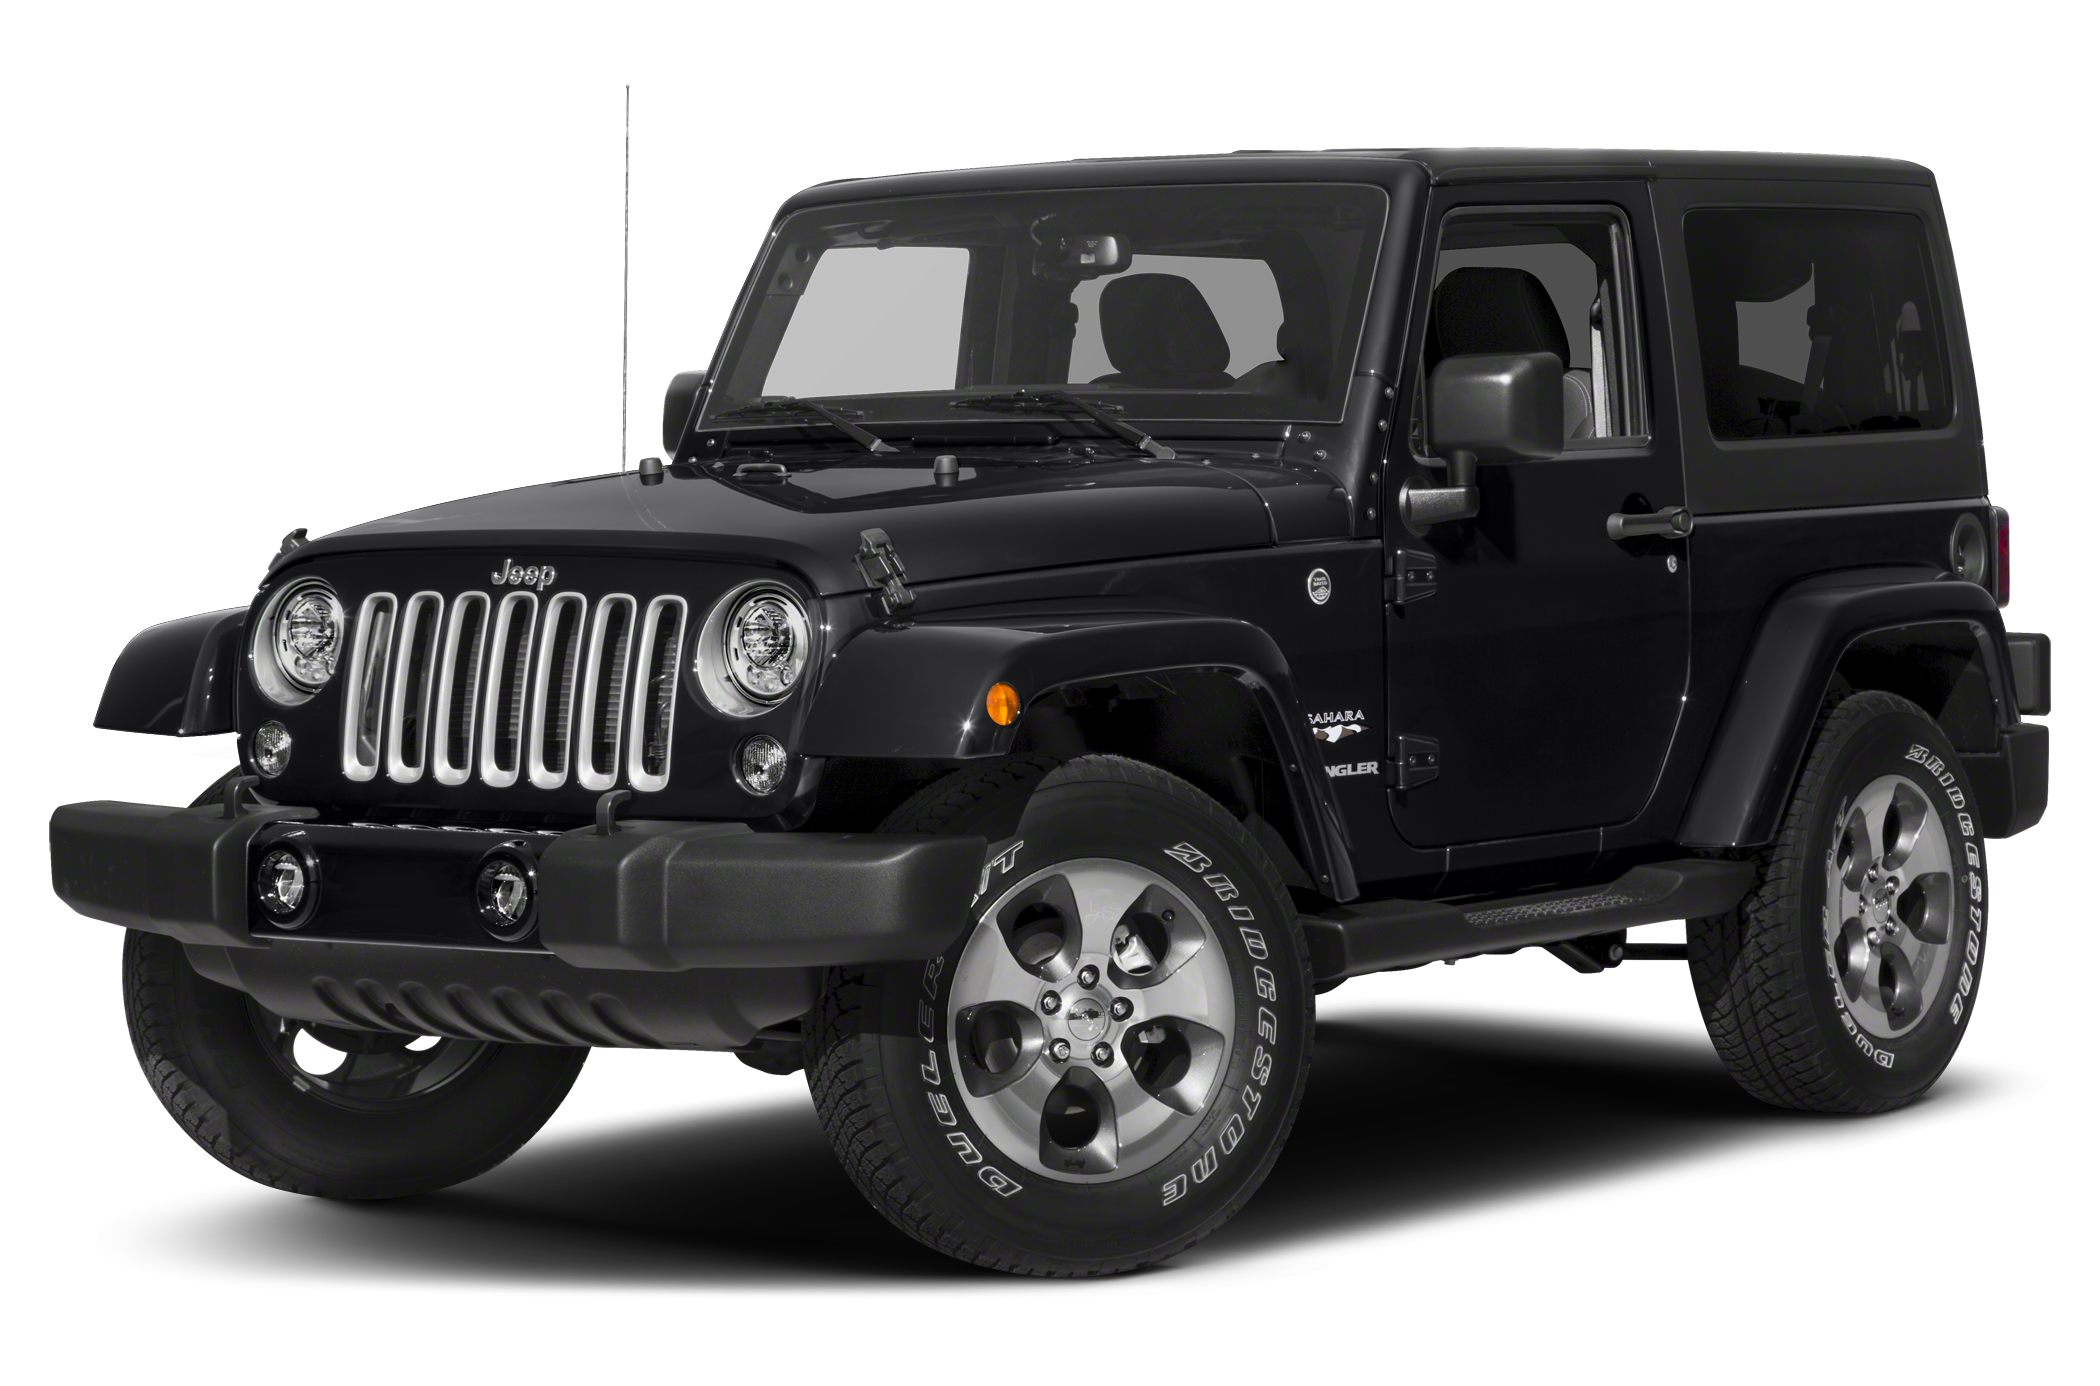 jeep wrangler 2017 2 door. Black Bedroom Furniture Sets. Home Design Ideas